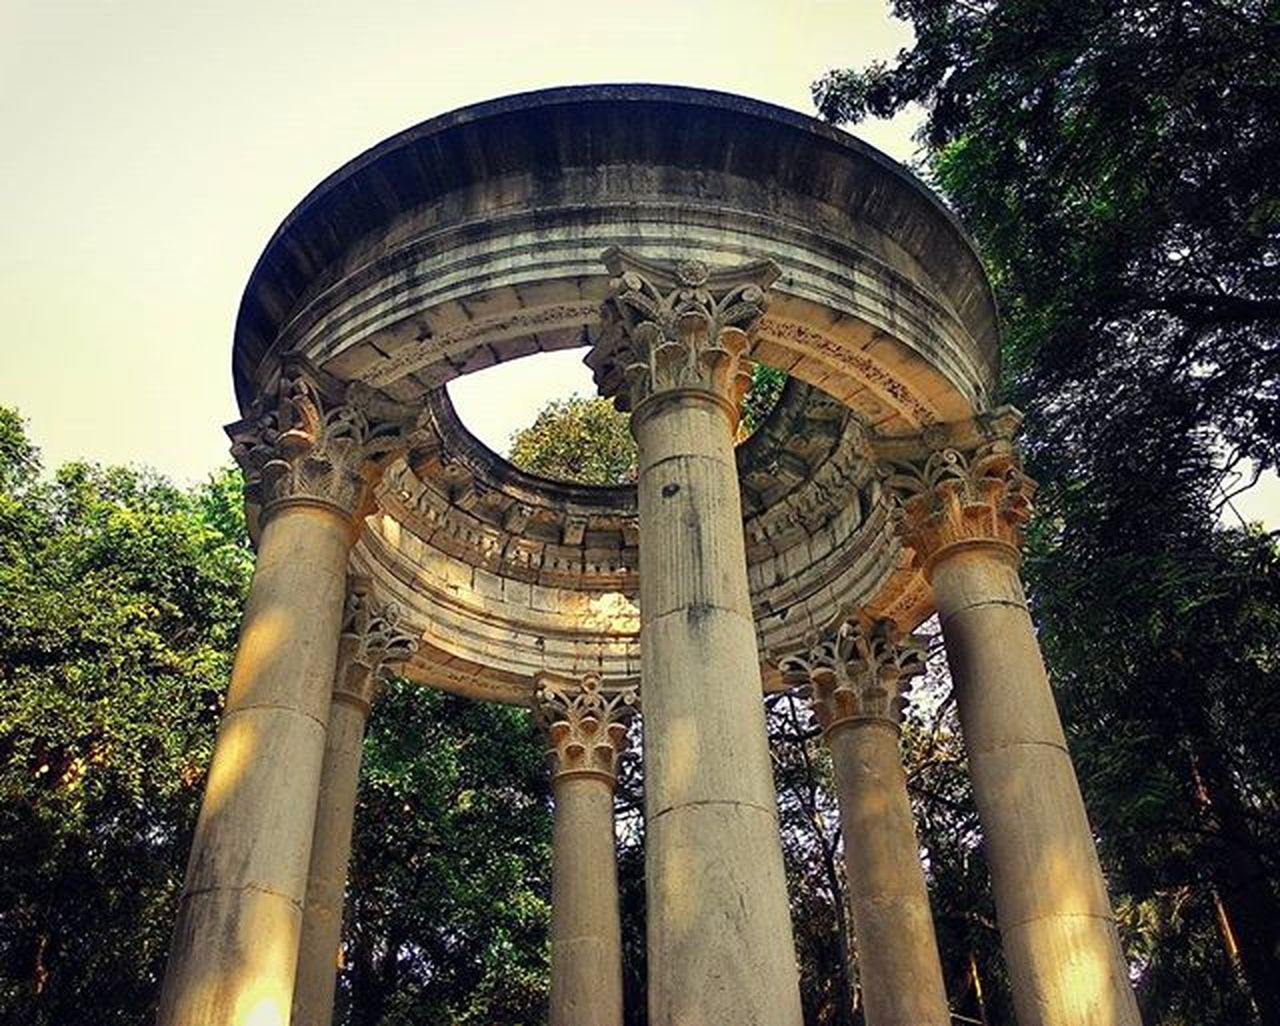 The circle of life! Circleoflife Ancient Historical Heritage Architecture Structure Pillars Ranibaug Ig_Mumbai Ig_maharashtra Ig_india Ig_worldclub Repostingindia Indian_photographers India_gram Igers Igersoftheday Asus Zenfone Zenfoneglobal Asusglobal Seewhatotherscantsee Indiaunseen Incredibleindiaofficial _soi _soimumbai instagram